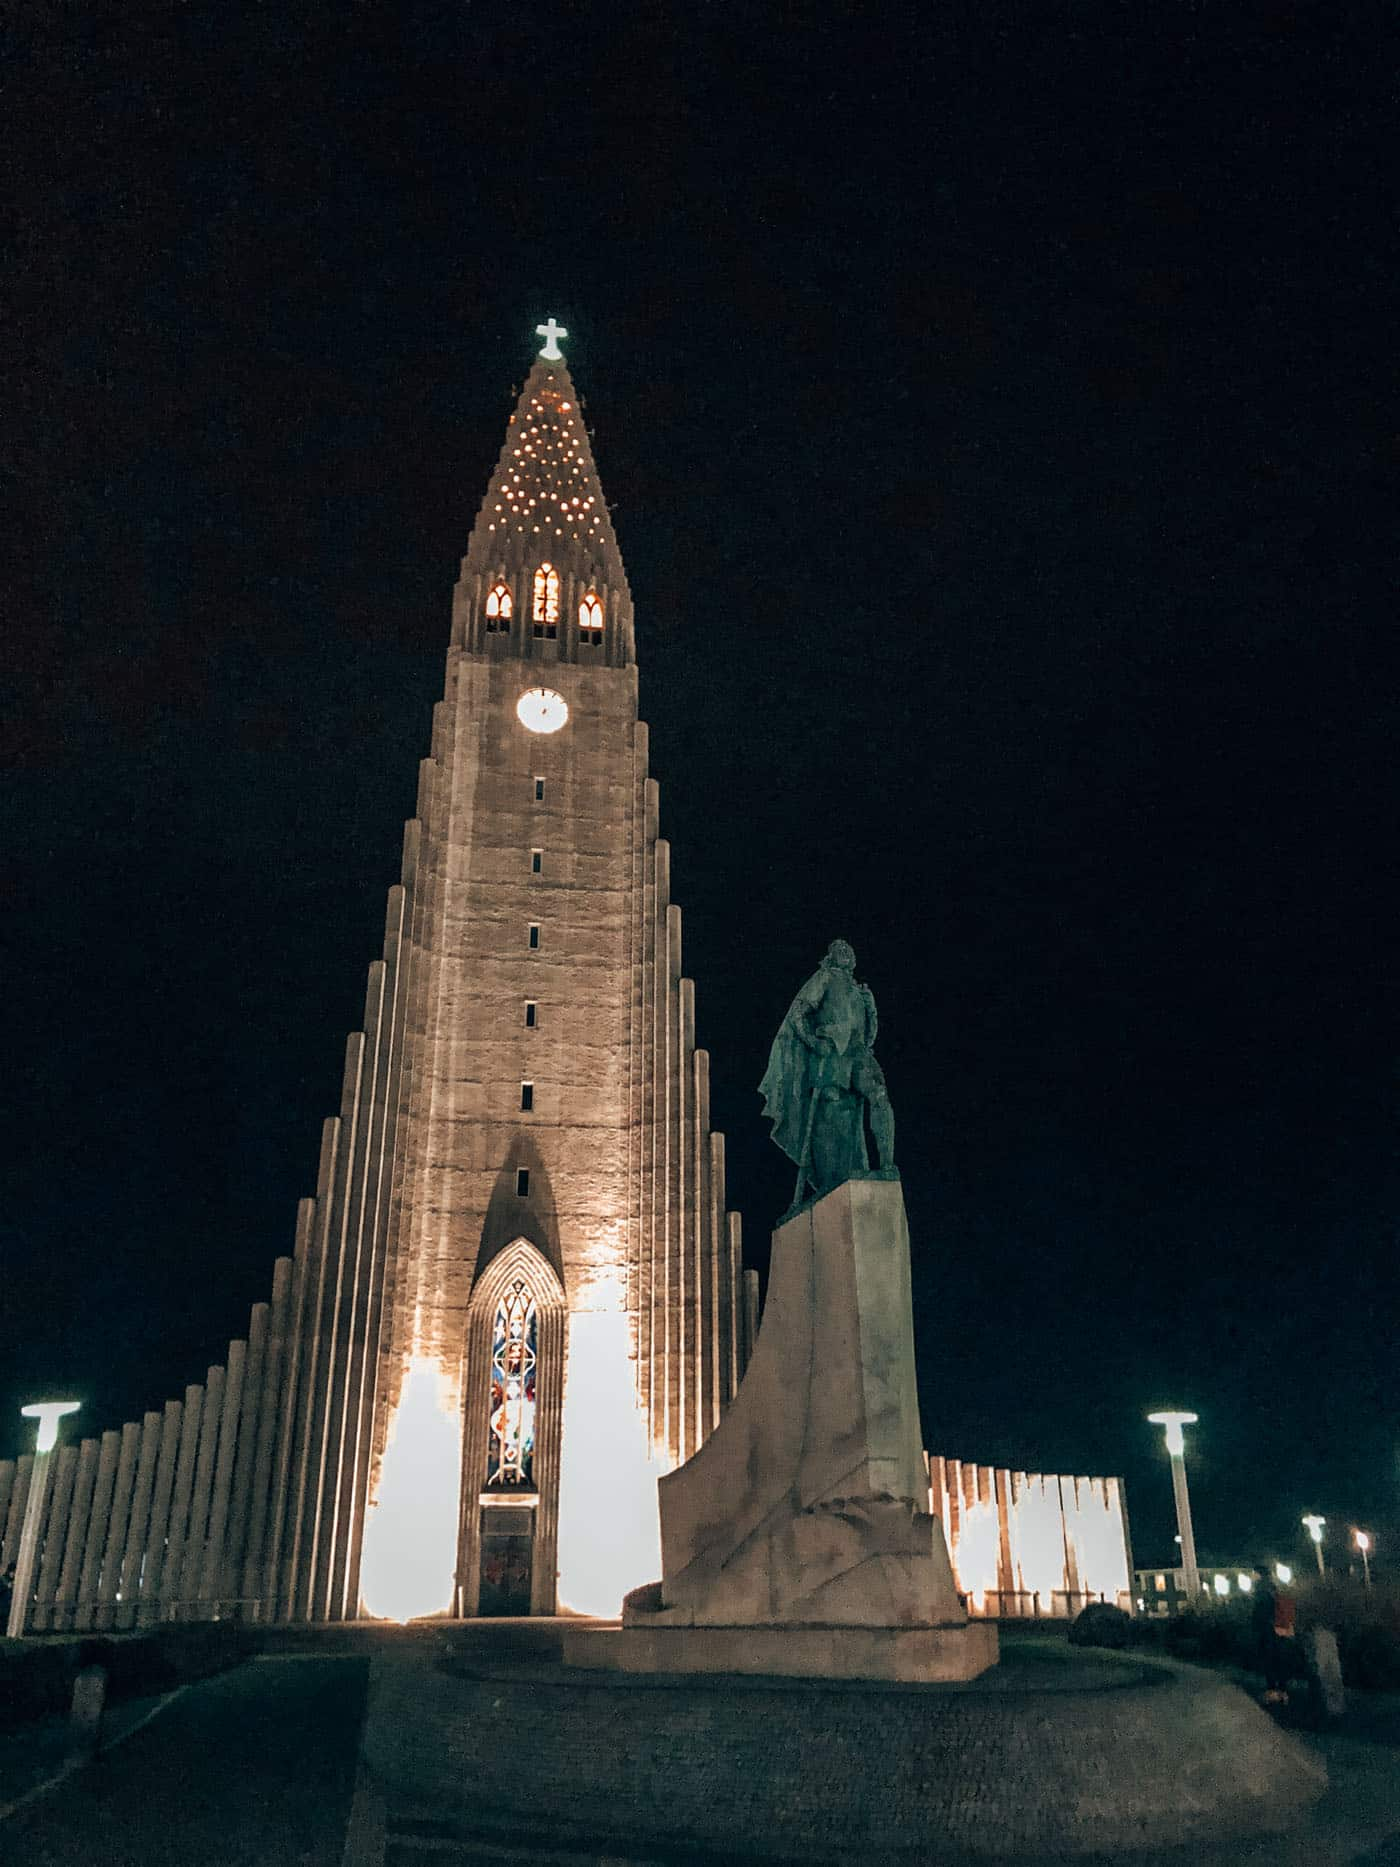 Church at night in Reykjavik